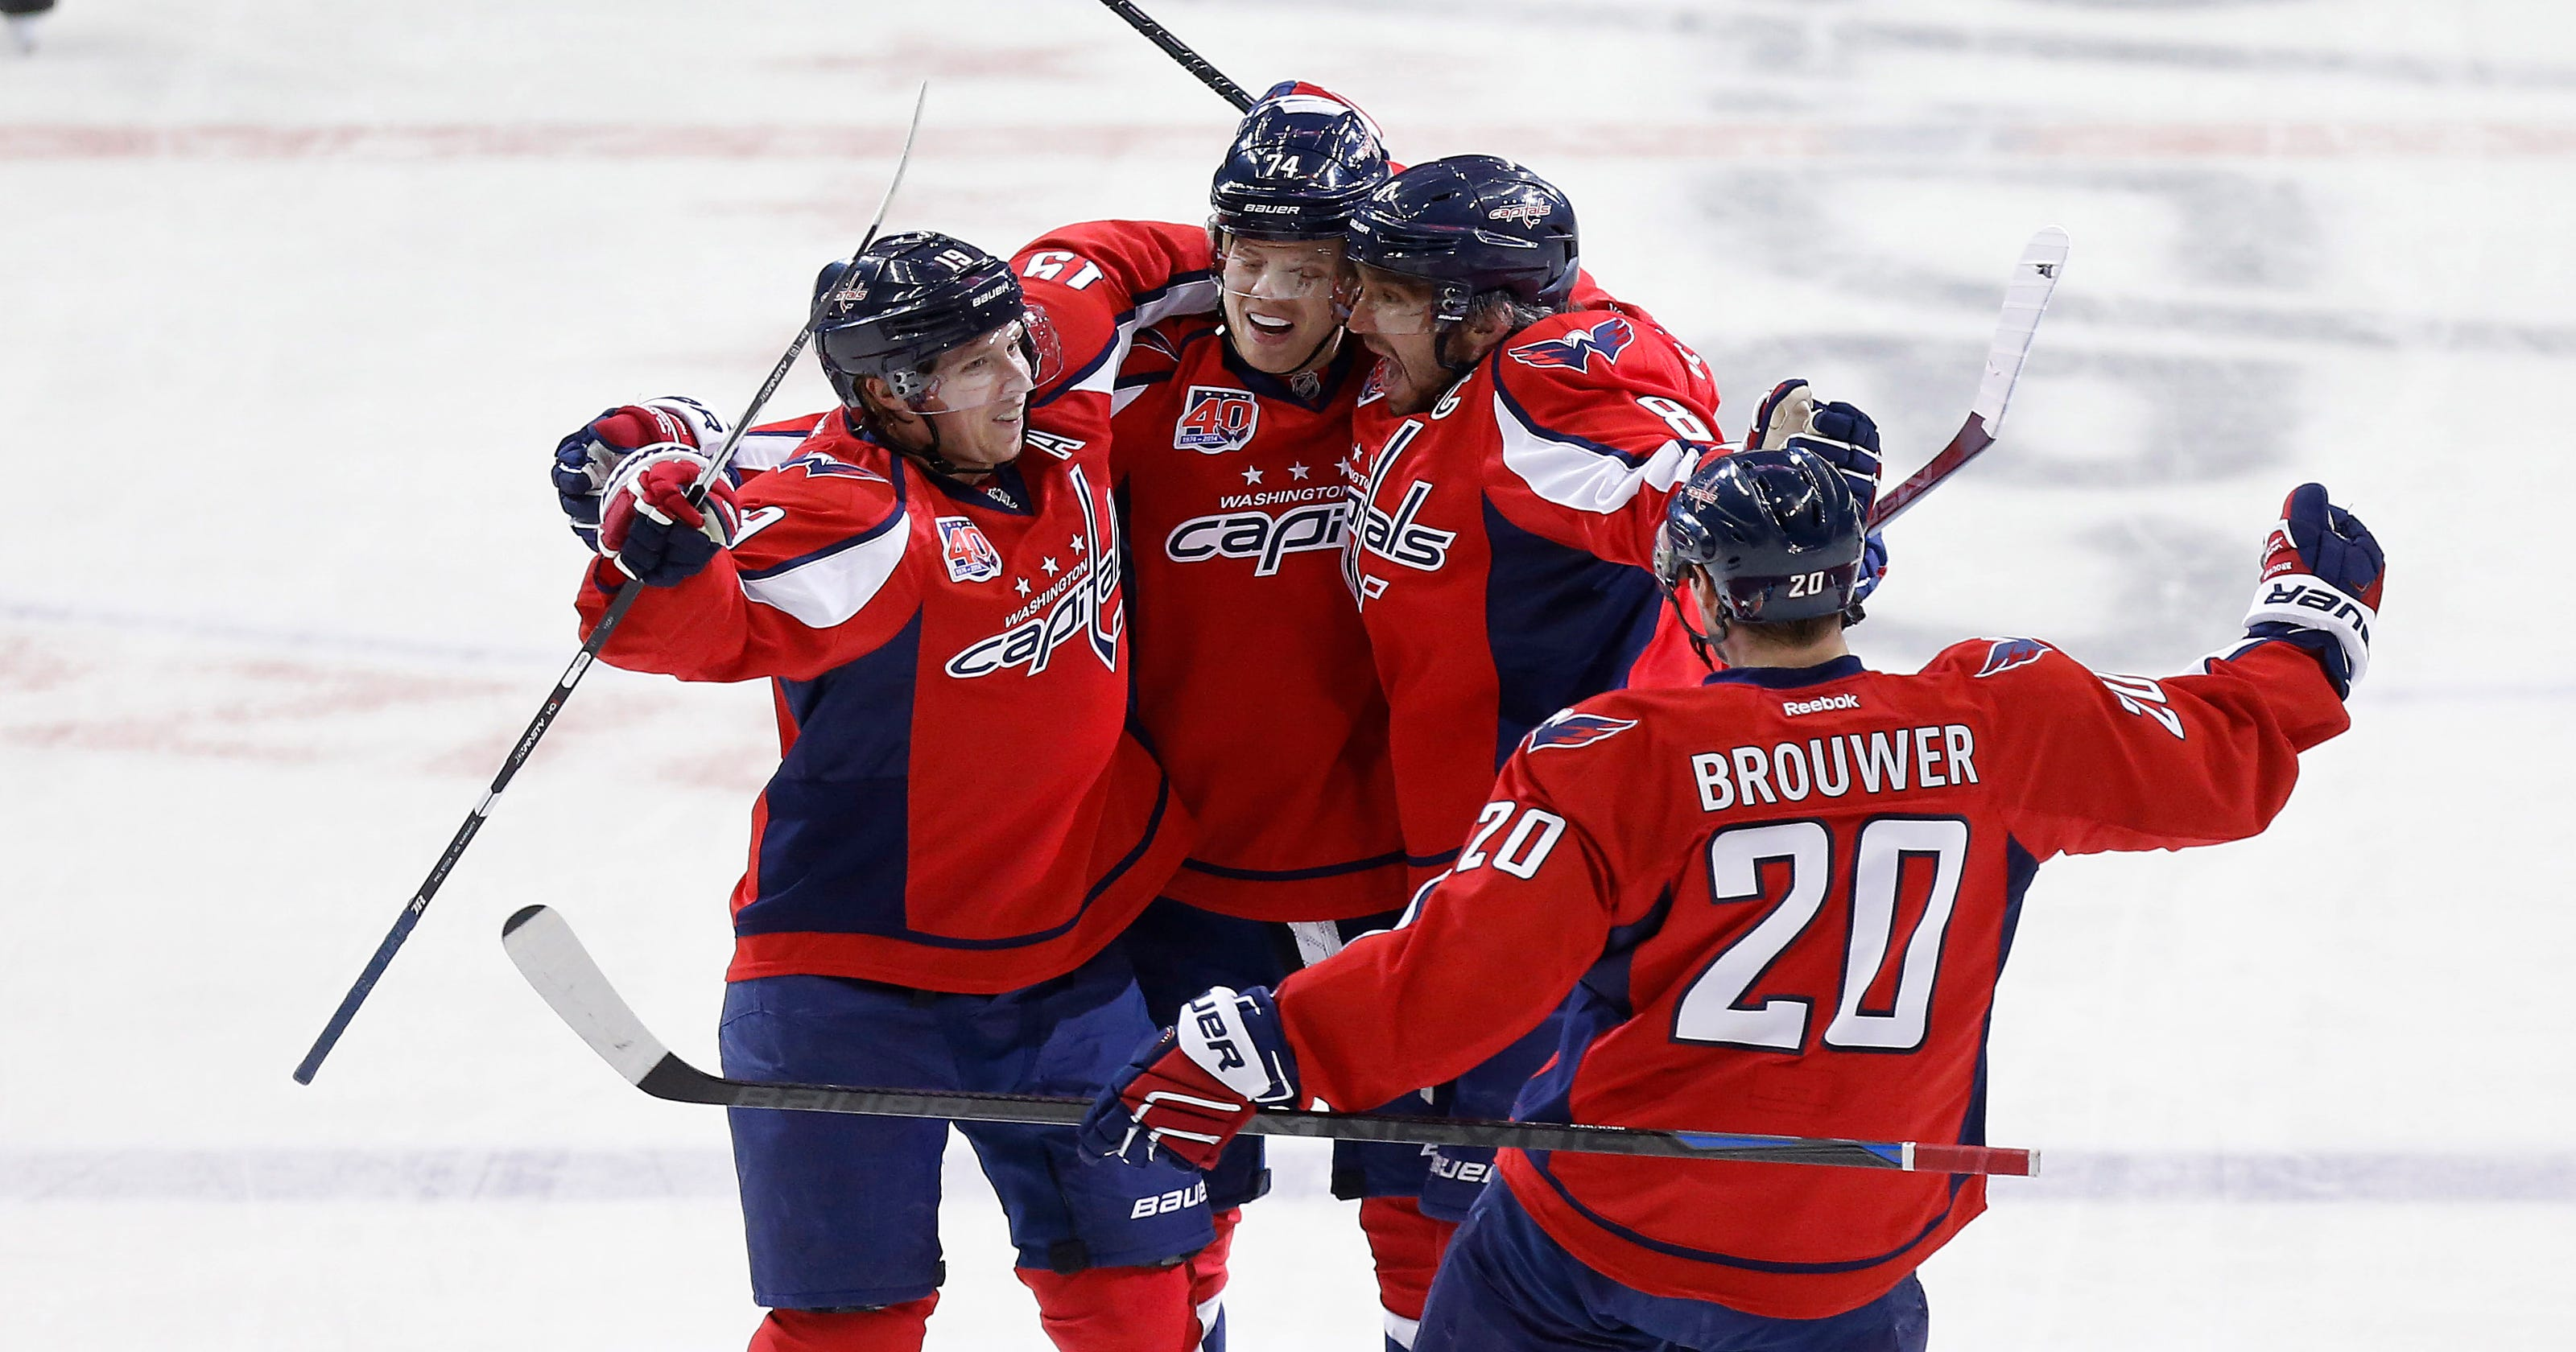 ef8f8afb184 Holtby makes 32 saves as Capitals slow surging Bruins